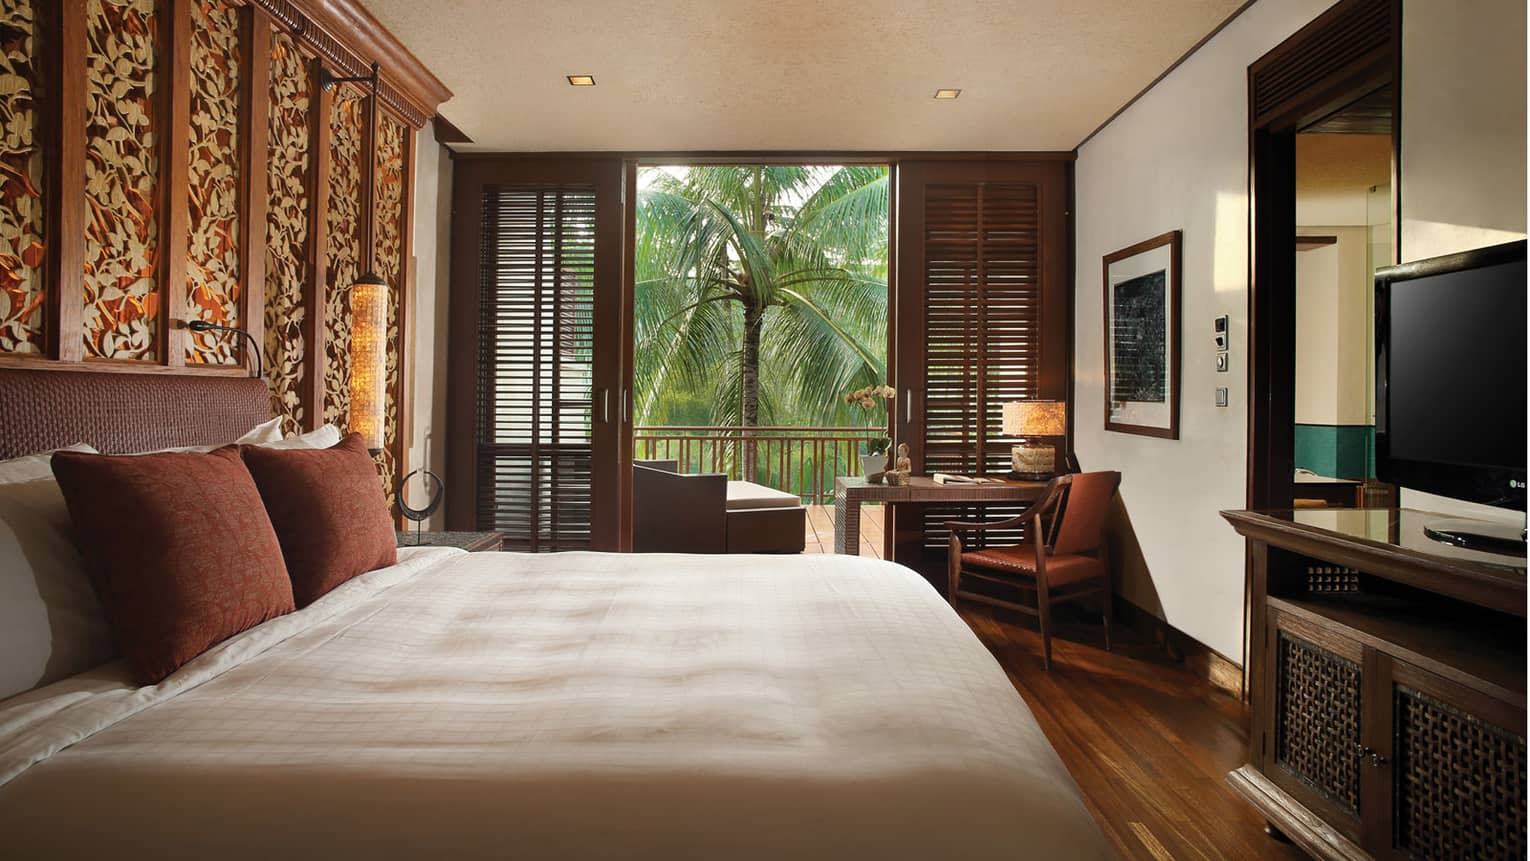 Family Suite bedroom with king-size bed, brown pillows, TV, wood shutters opening to patio with palm tree